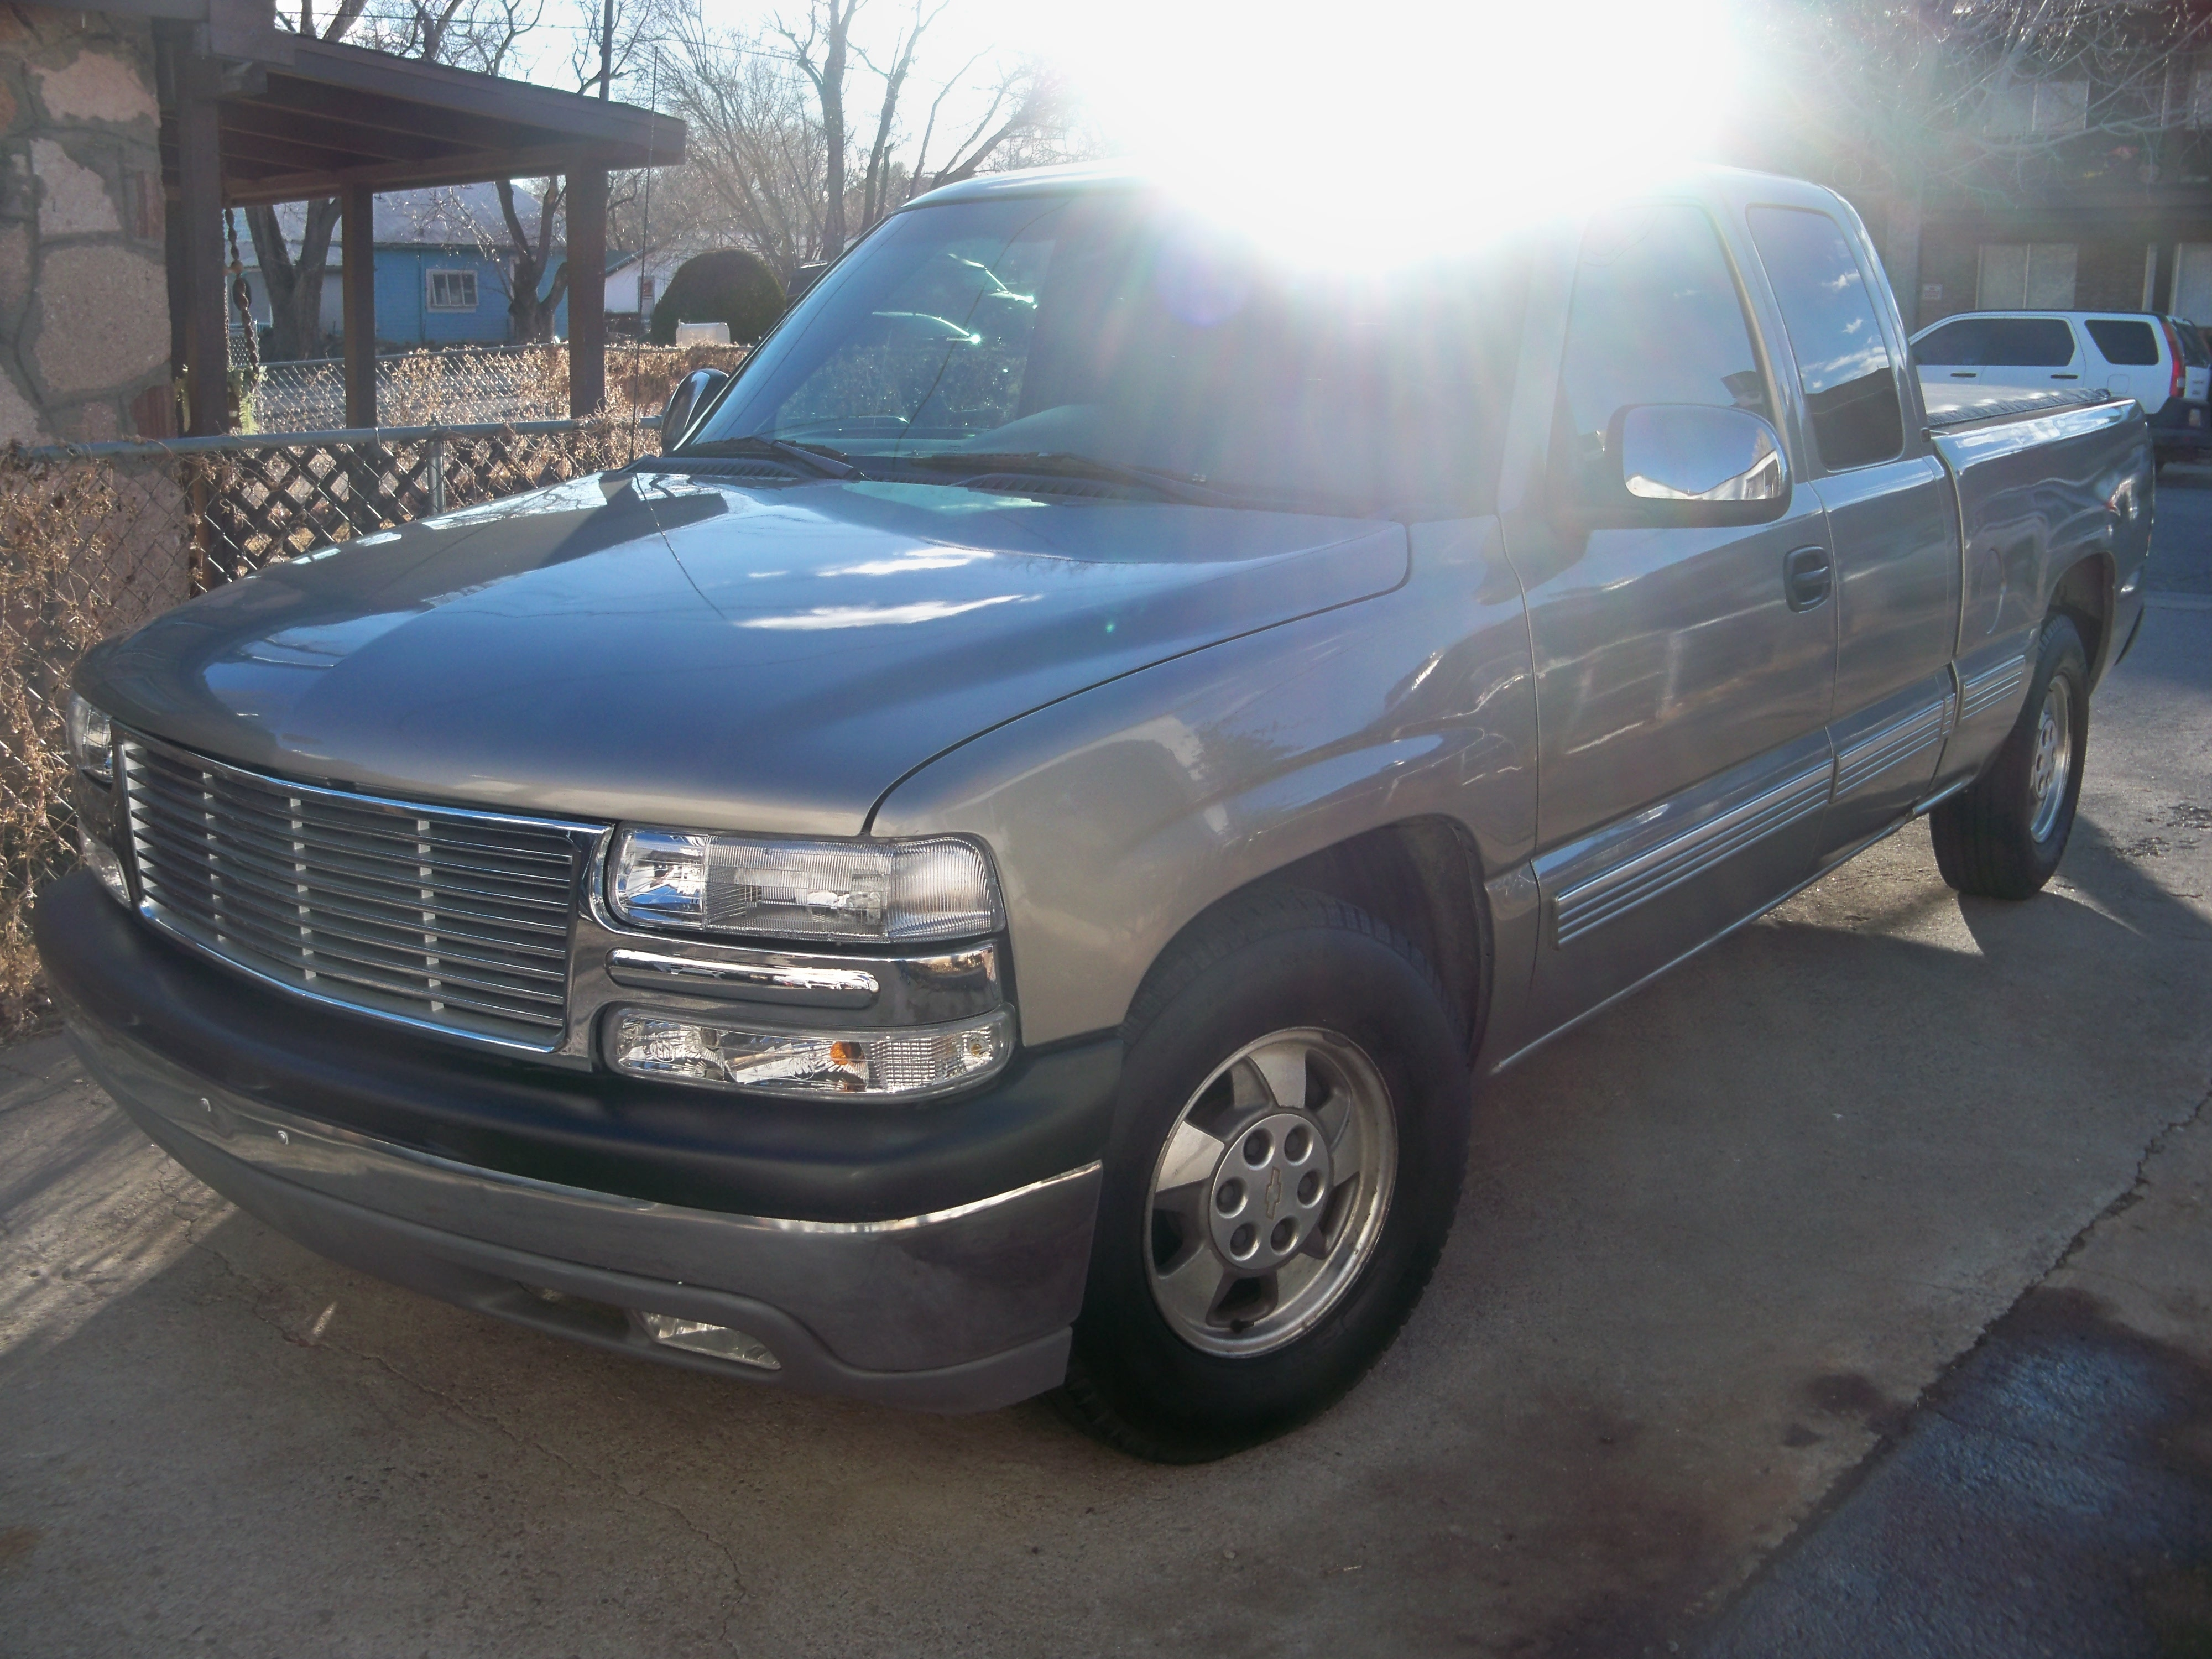 00silveradolt 2000 chevrolet silverado 1500 extended cabshort bed specs photos modification. Black Bedroom Furniture Sets. Home Design Ideas